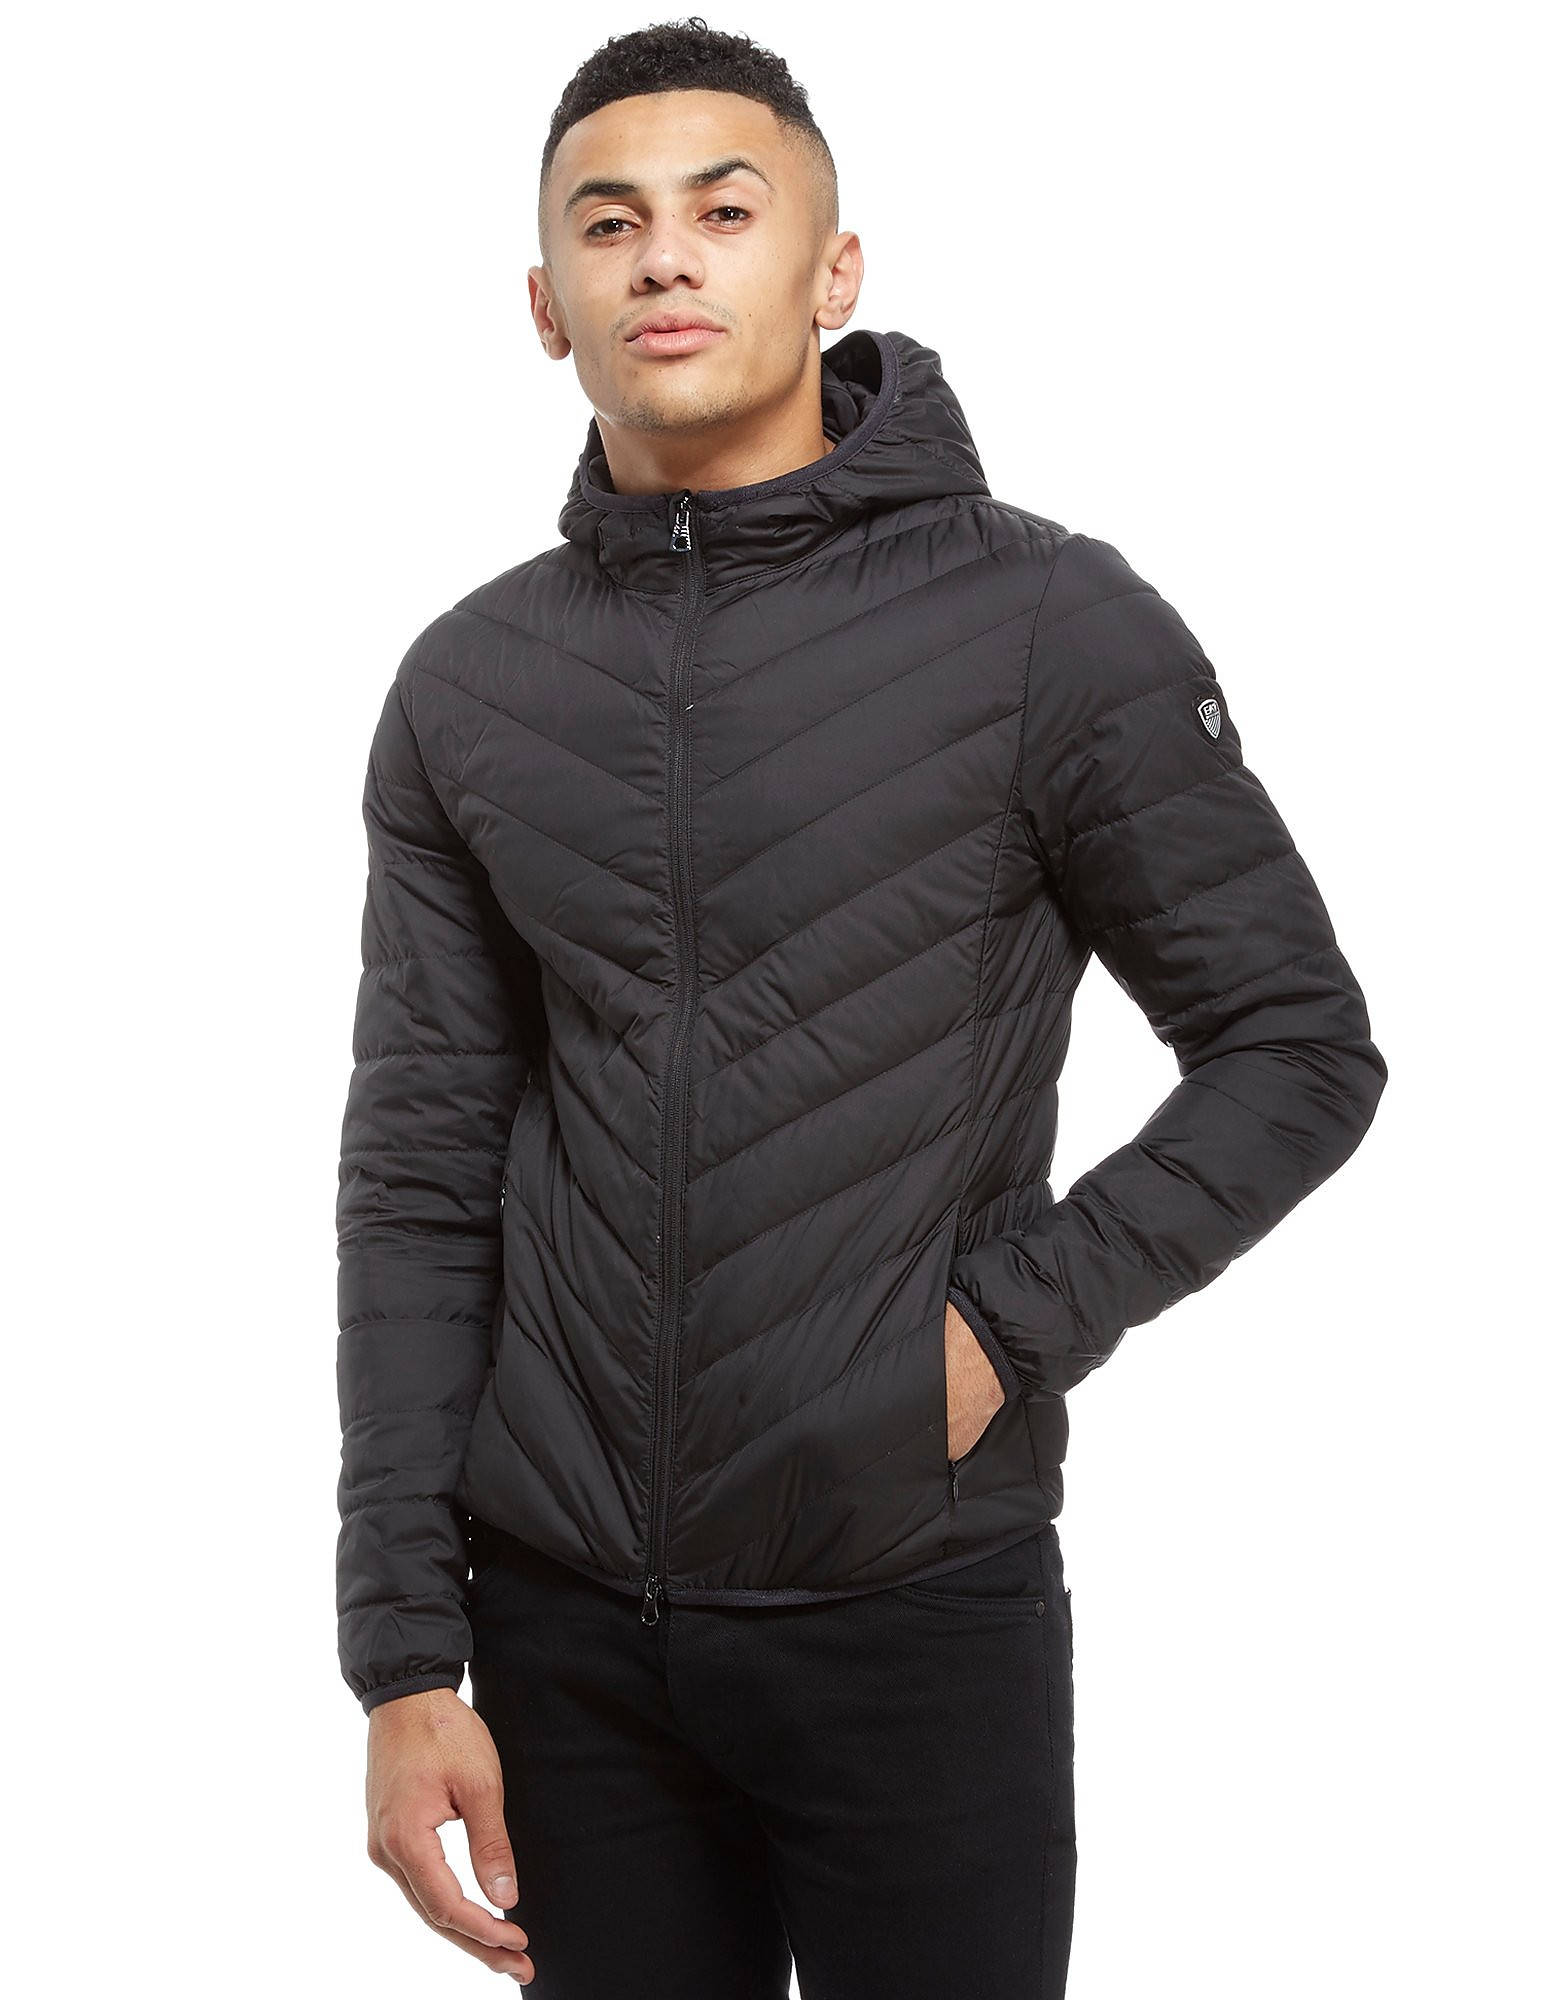 Emporio Armani EA7 Shield Logo Bubble Jacket